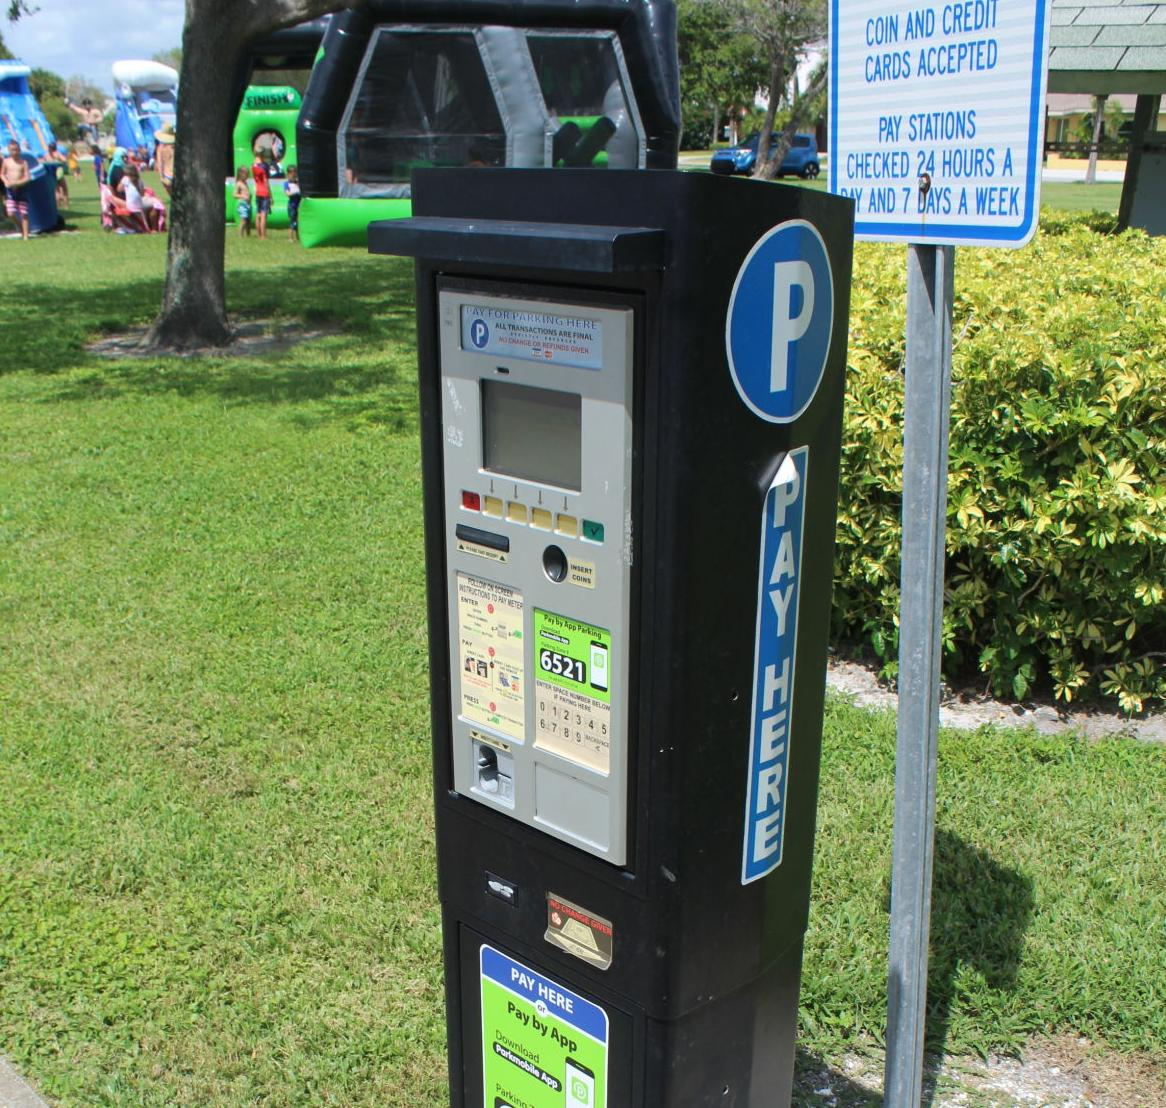 City expands metered parking across Treasure Island